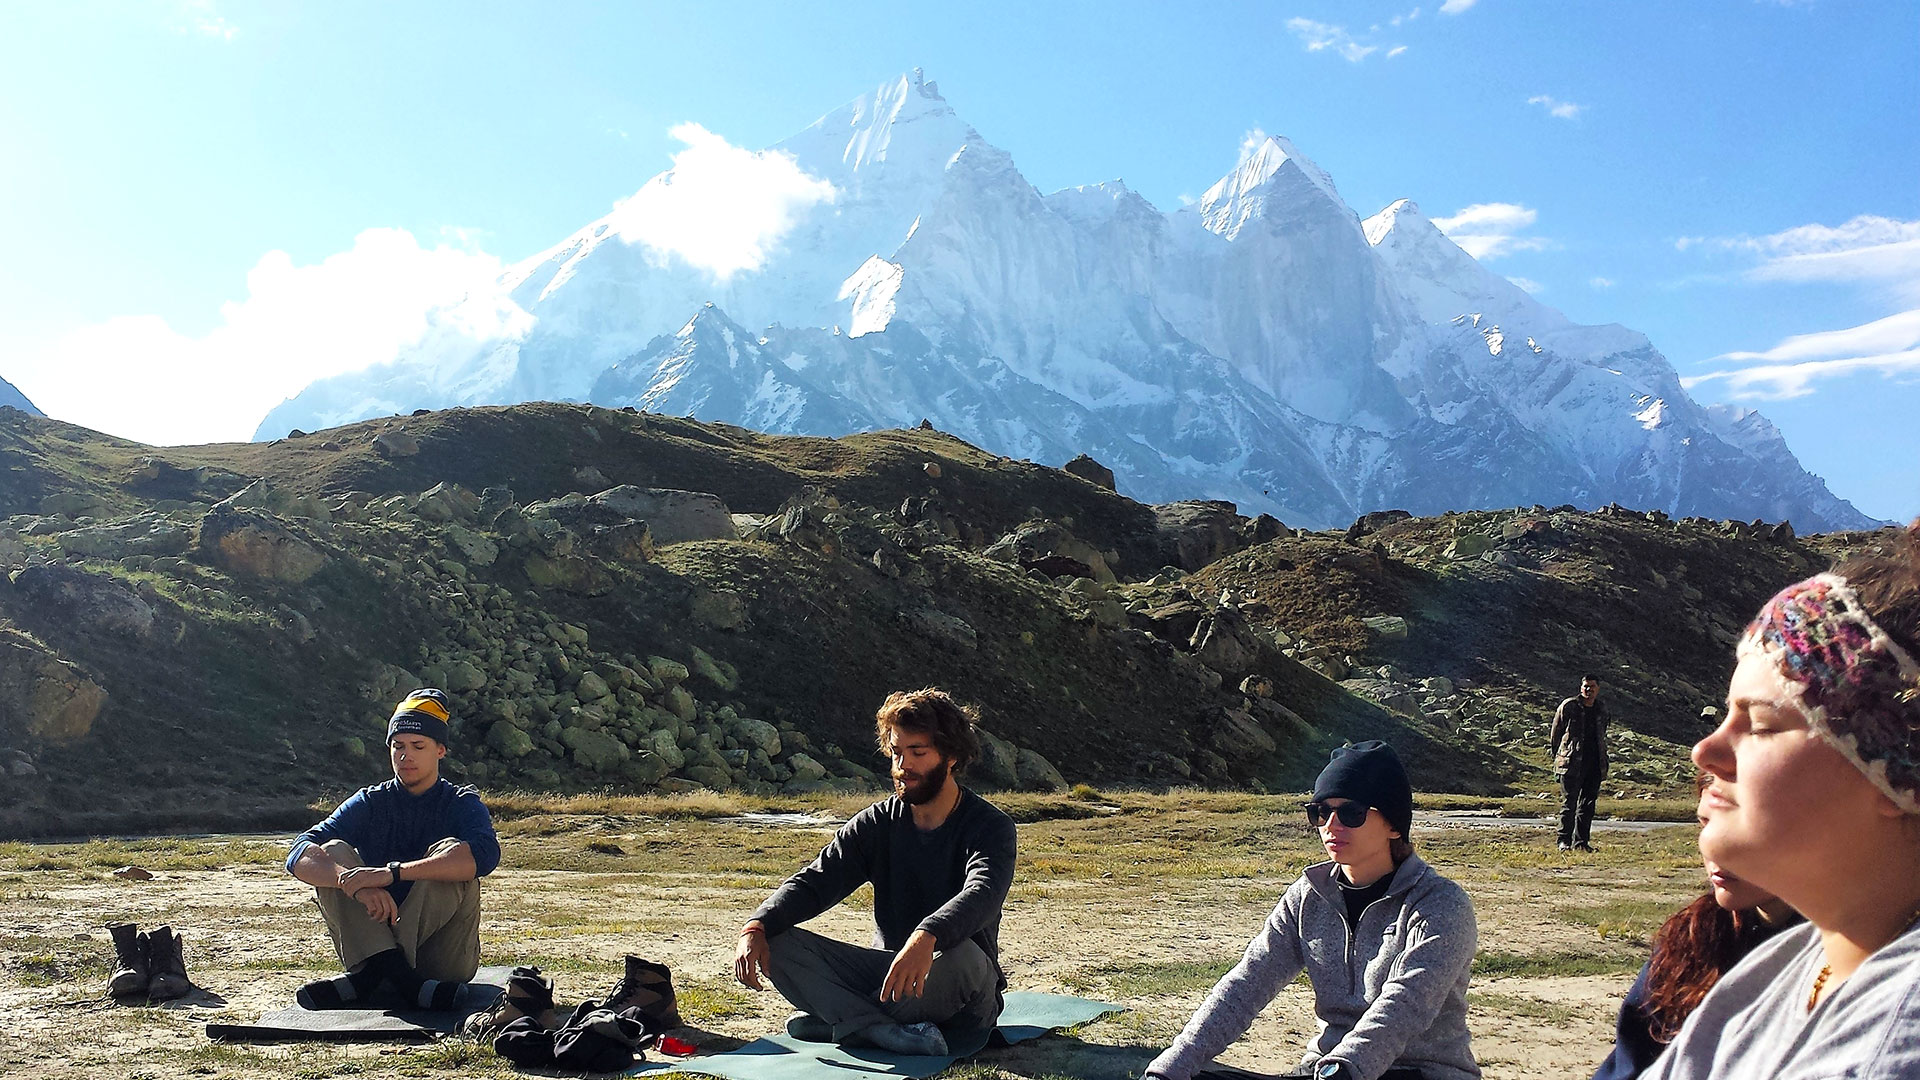 SMCM students meditate in the mountains on the India Study Tour